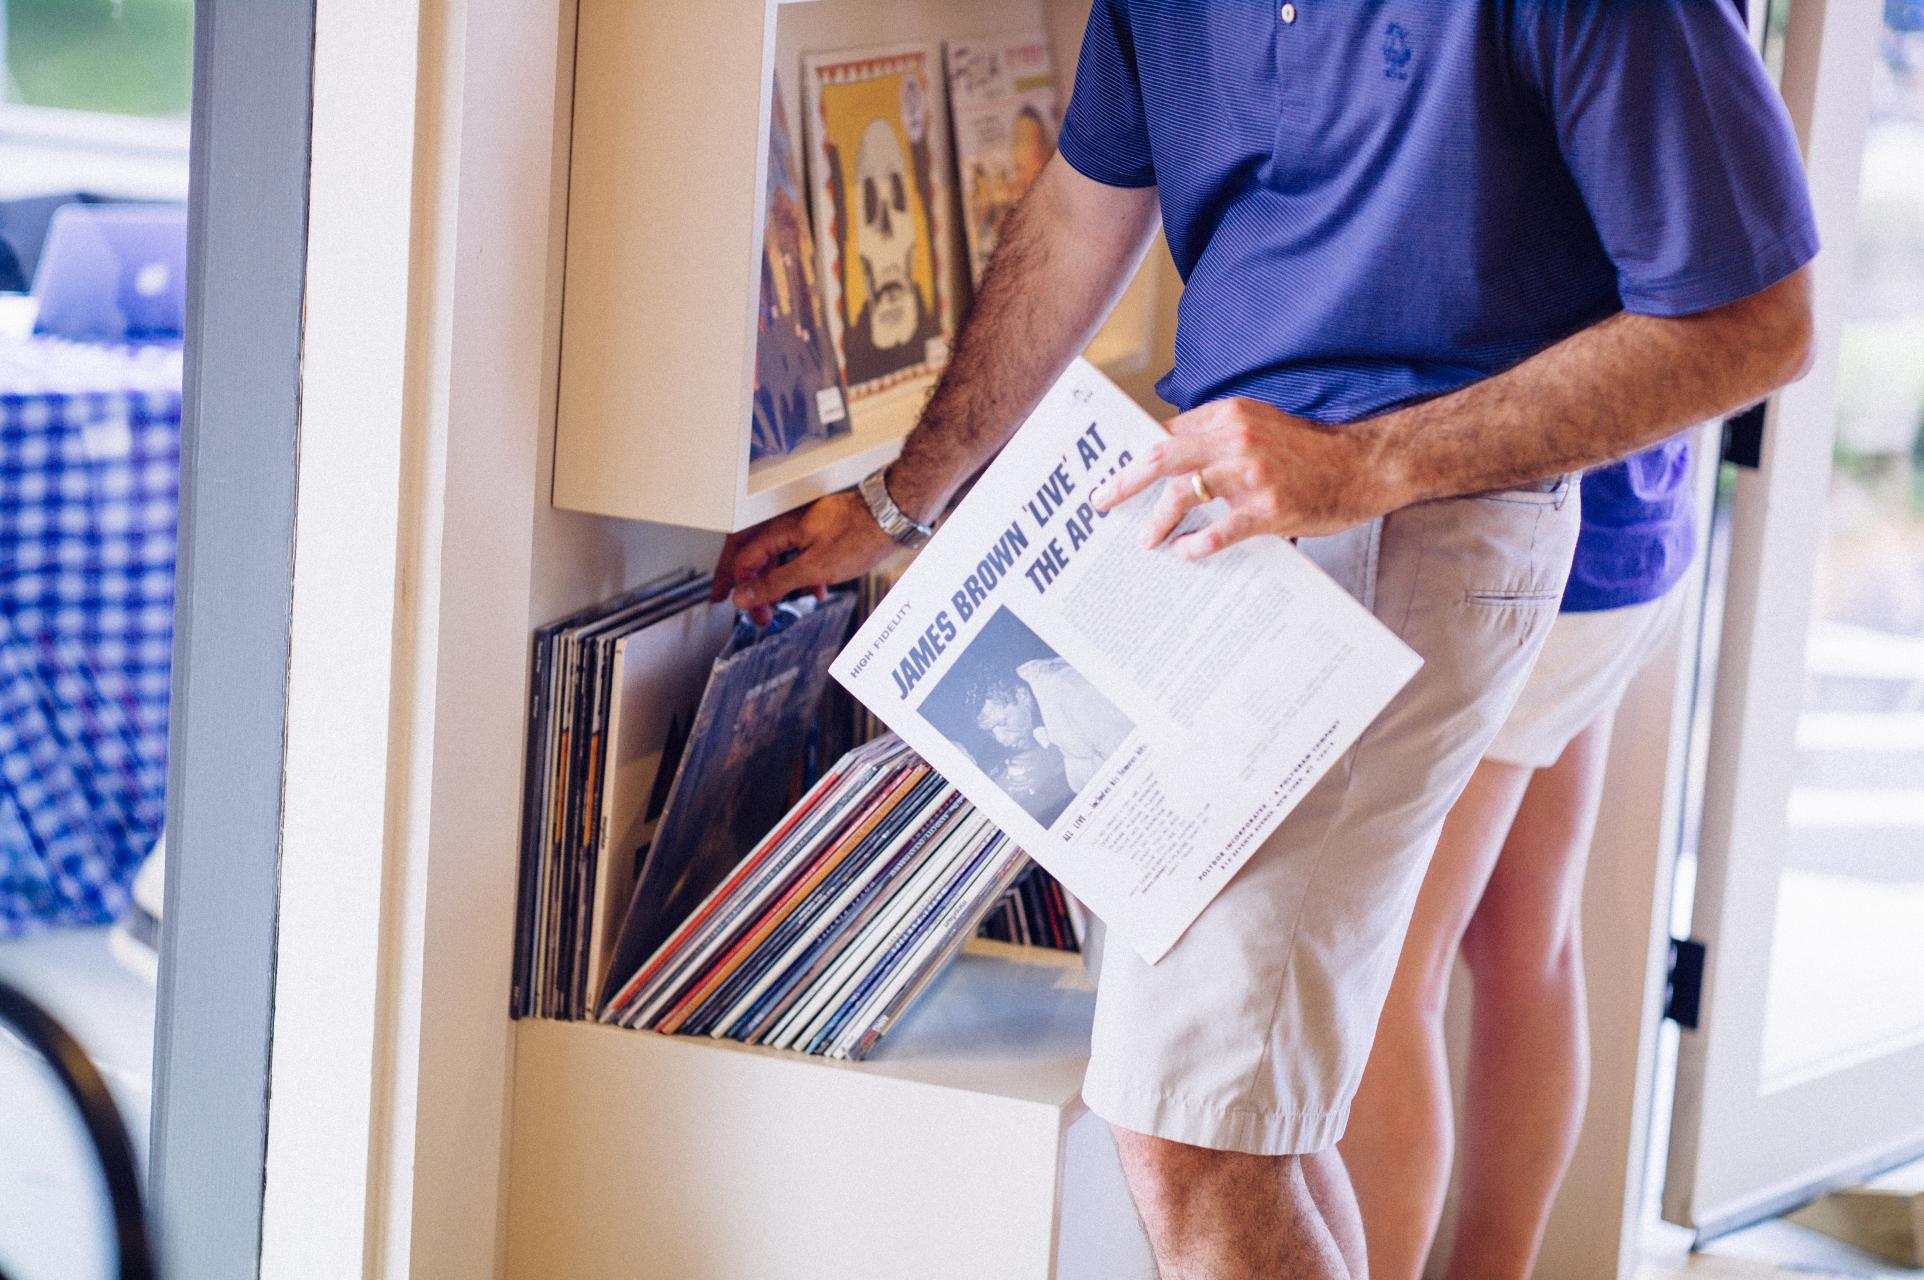 A customer perusing the record bins at Cream Puff Records